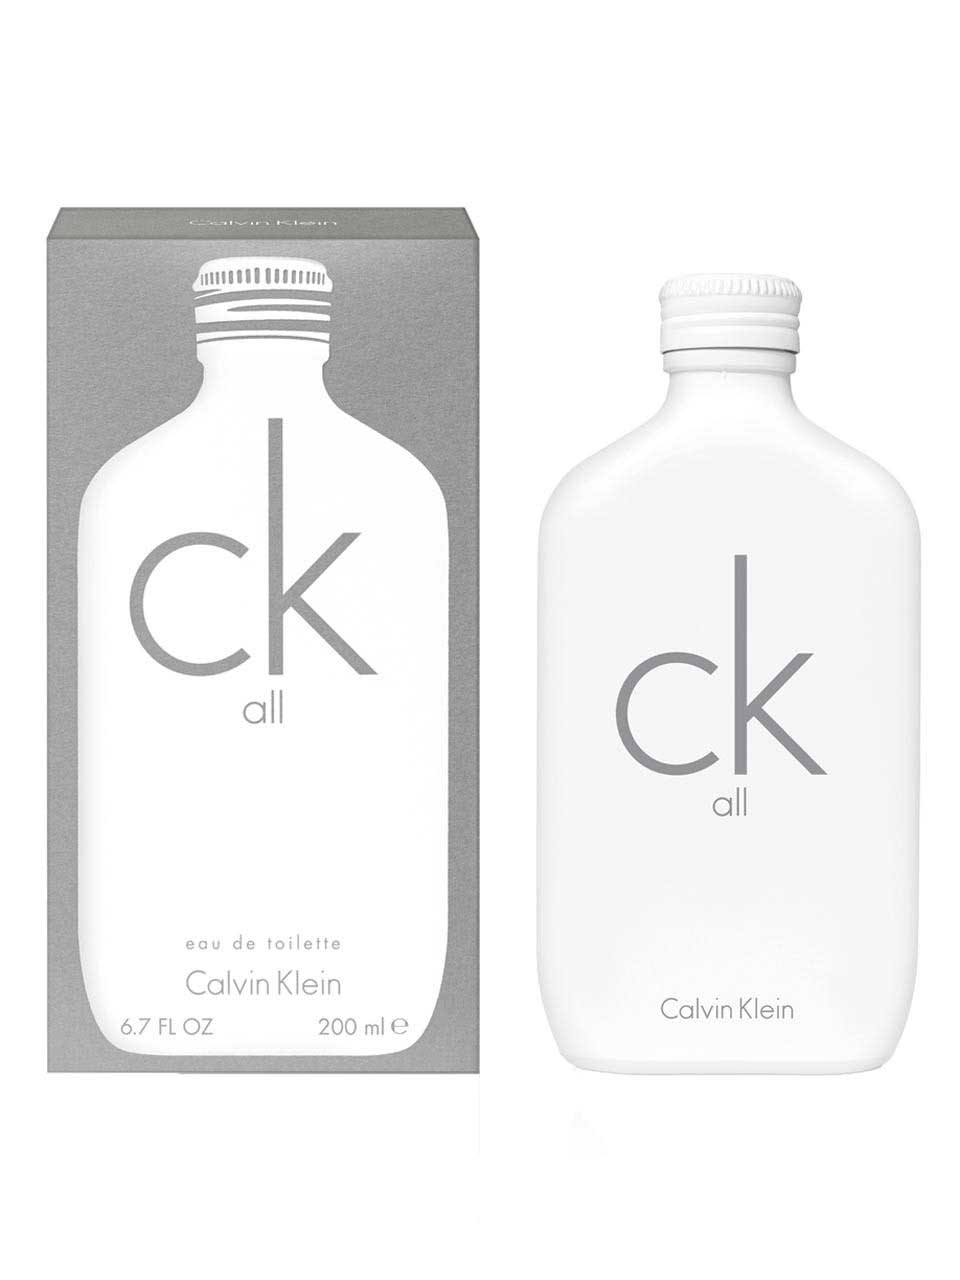 ck all calvin klein perfume a new fragrance for women. Black Bedroom Furniture Sets. Home Design Ideas